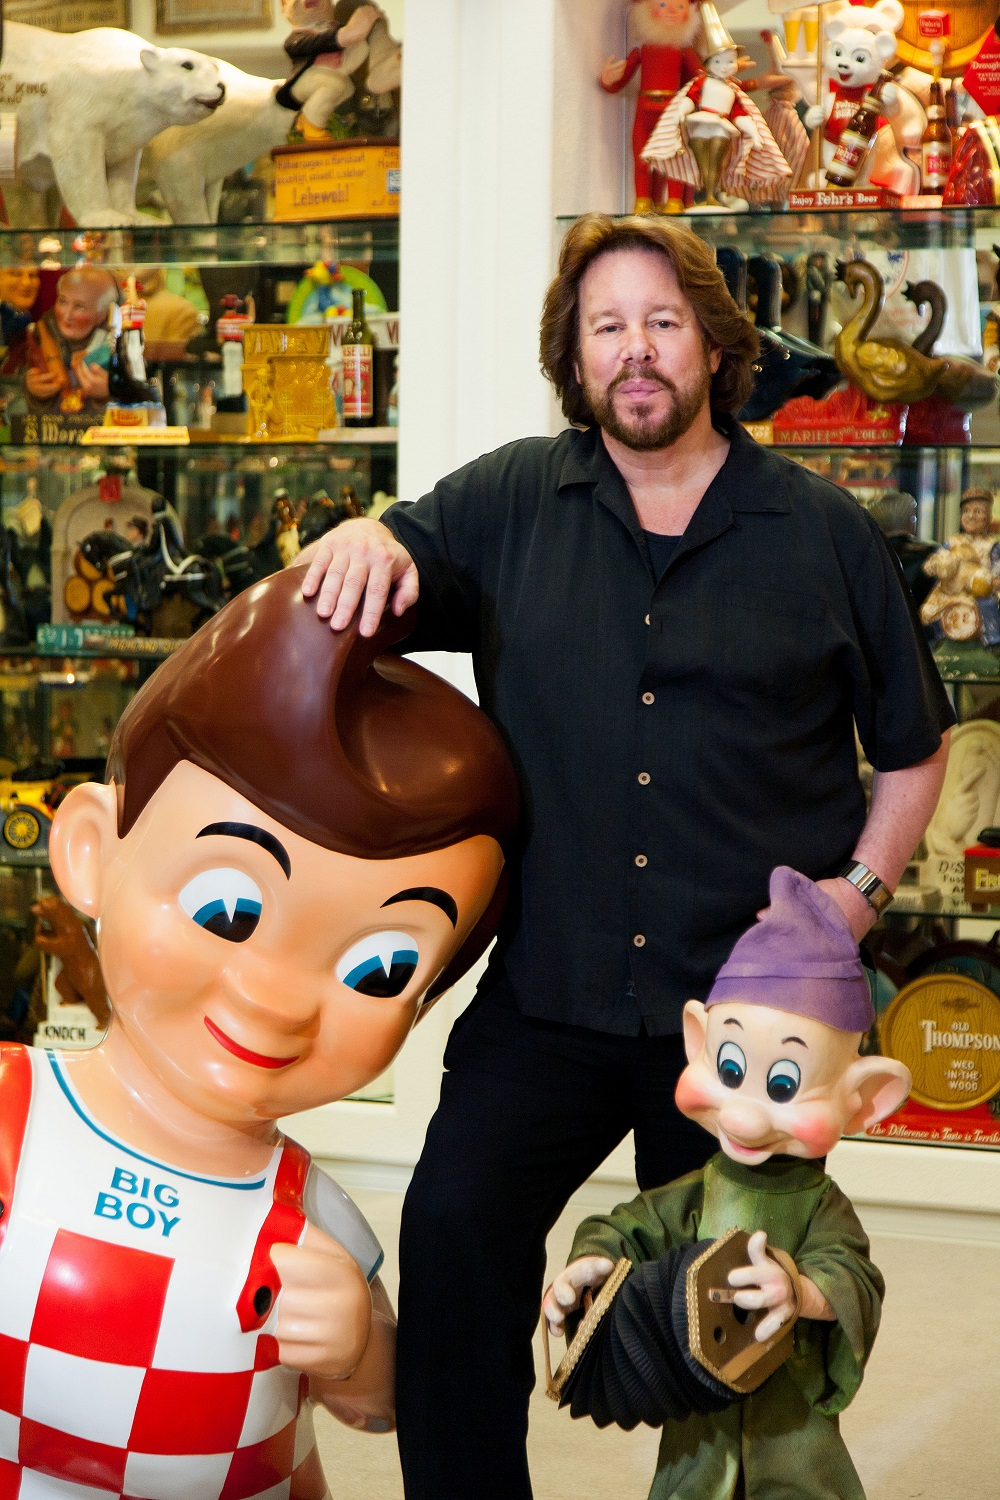 Entrepreneur Michael Pollack pays tribute to one of his many passions in his corporate offices, which overflow with memorabilia.